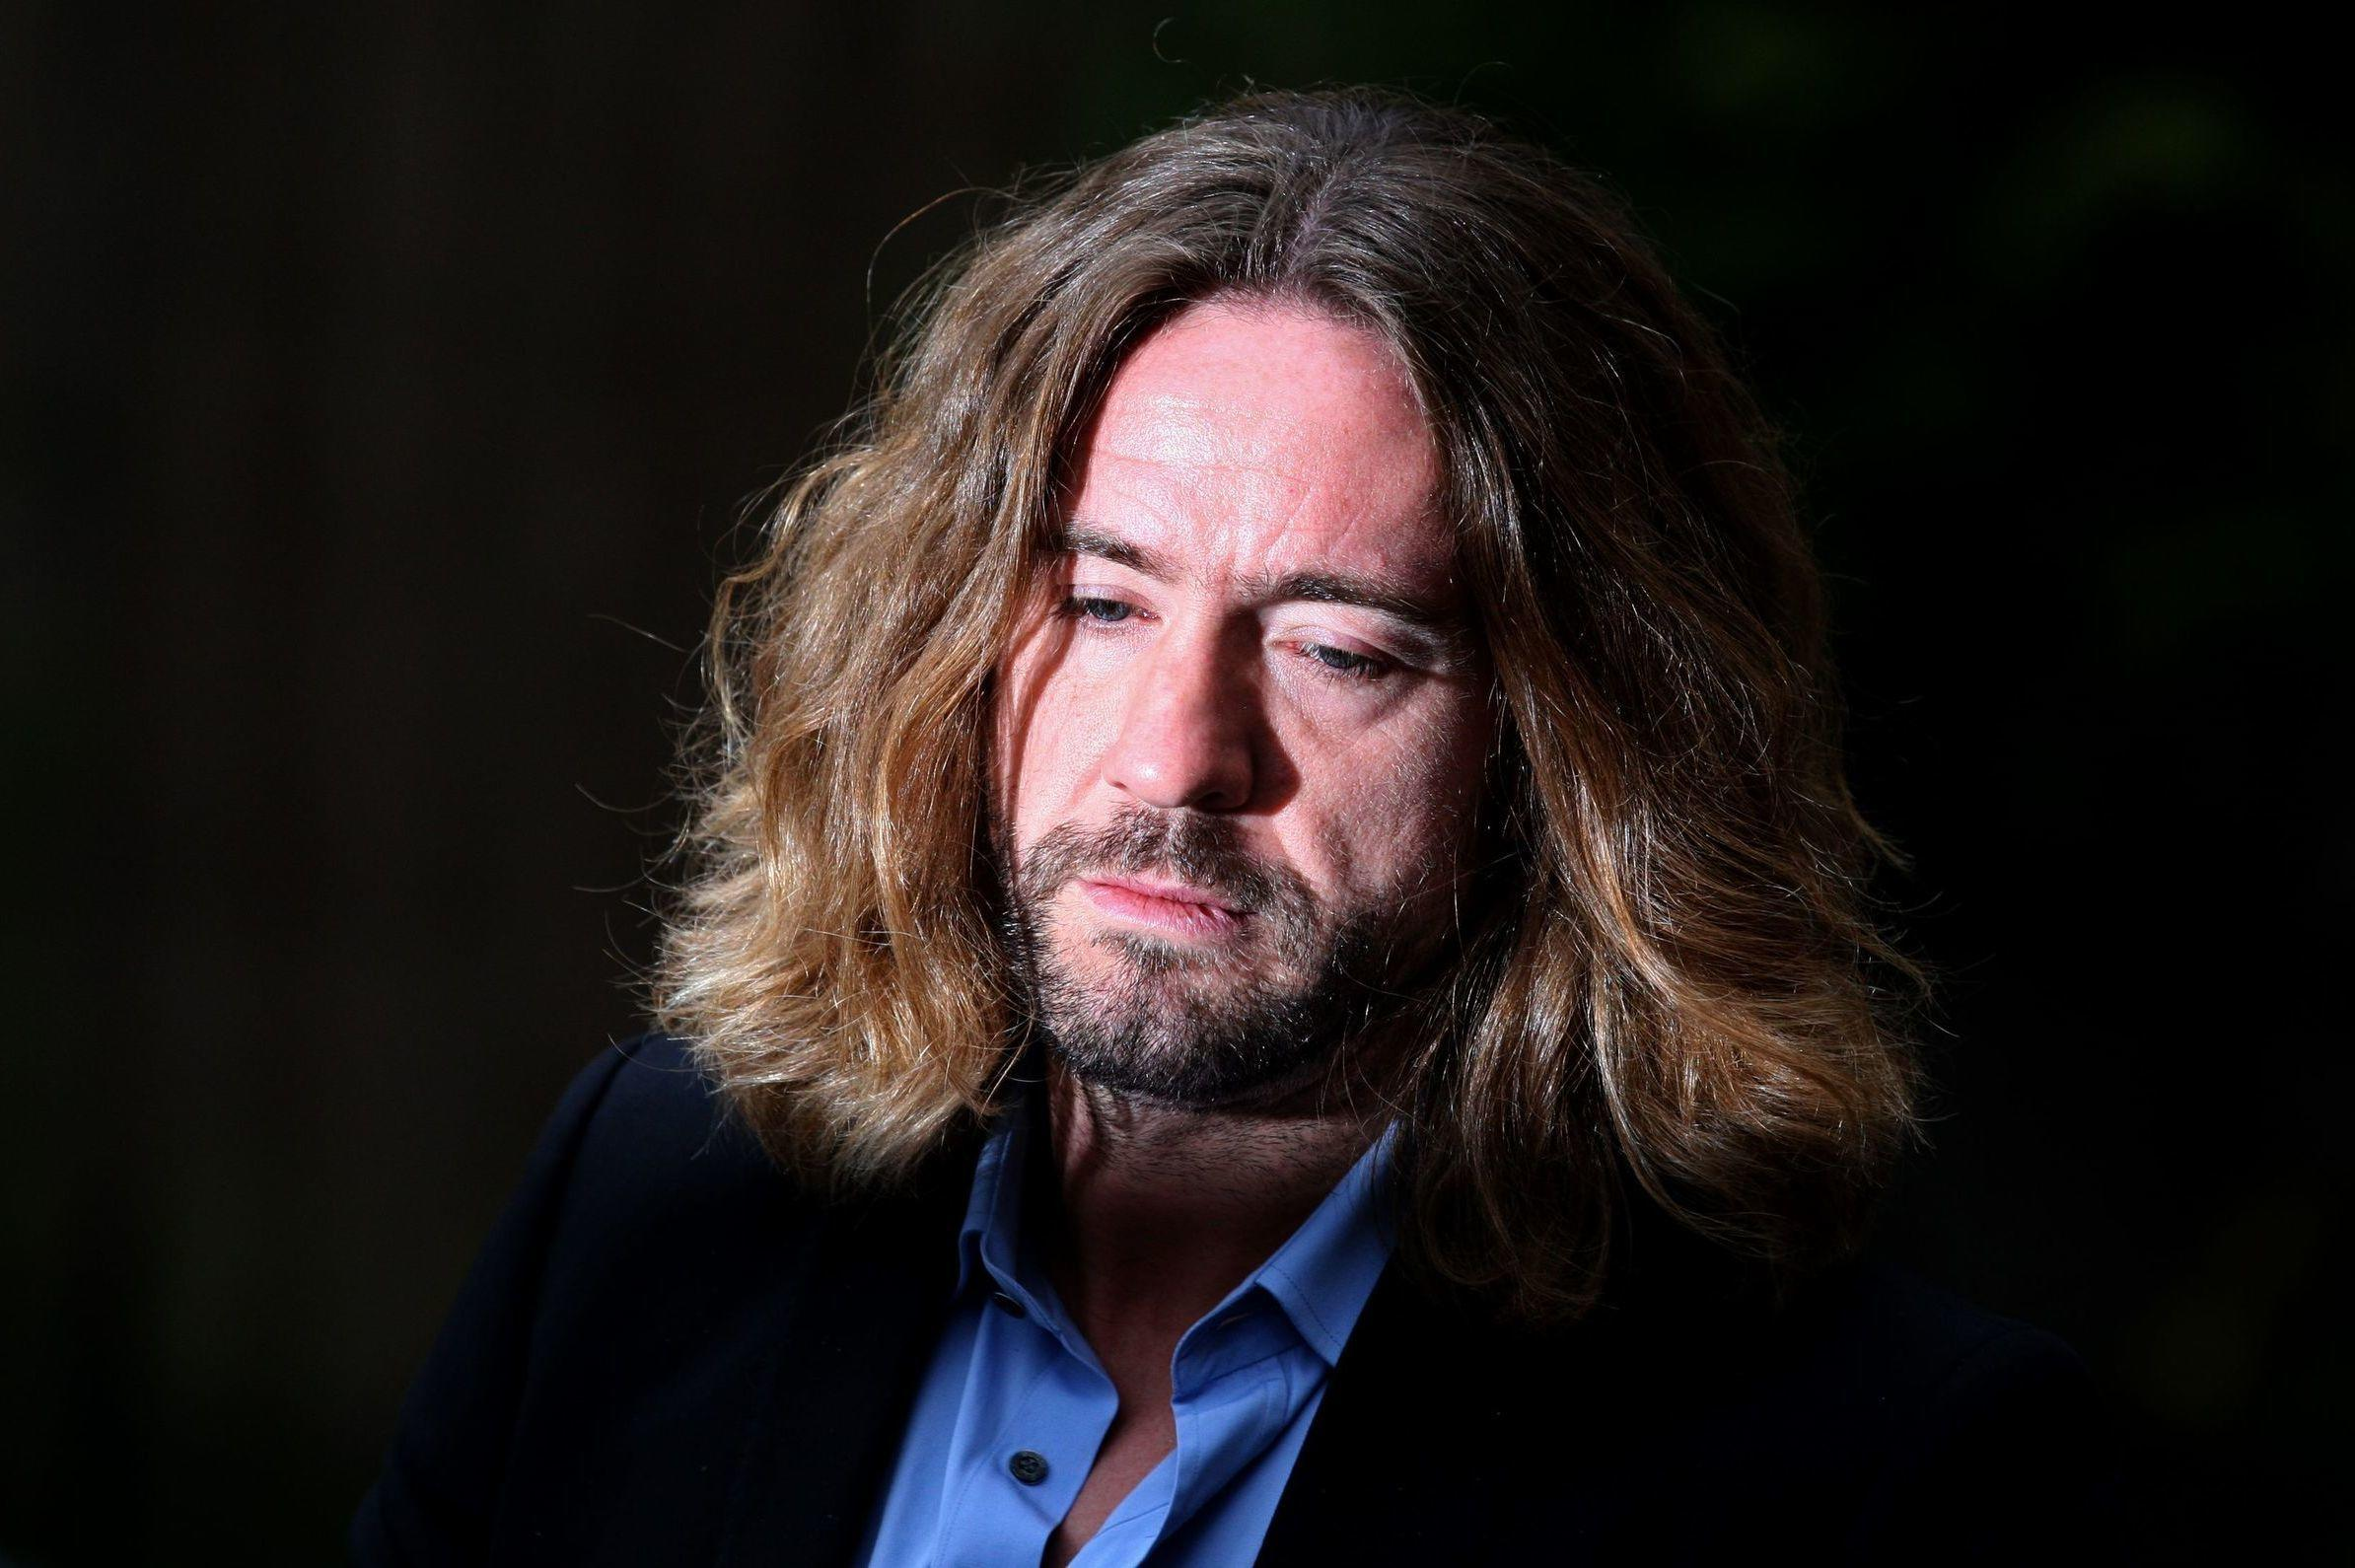 """<p>""""I've got some savings for a rainy day, but I don't bother looking to see if I might get a better interest rate elsewhere,"""" the comedian Justin Lee Collins revealed in an interview with <a href=""""http://www.telegraph.co.uk/finance/personalfinance/fameandfortune/8946798/Fame-and-Fortune-Justin-Lee-Collins.html"""" target=""""_blank"""">The Telegraph</a>. """"I don't have the time or the inclination to shop around at the moment.""""</p>  <p><strong>Advice from Jasmine Birtles, founder of moneymagpie.com: </strong></p>  <p>""""The sad thing is that Justin is at an age where even relatively small amounts of money put into a good investment like stocks and shares will grow into something really impressive in later life. The younger you are, the more time your investments have to grow and so the bigger they will be when you retire.</p>  <p>""""The earning-power of a comedian can be volatile so it's helpful to have a serious cash cushion to dip into in the bad times and help invest in your career to push it one when it seems to be faltering. It's true that shopping around for a better savings rate right now can seem pointless but if you're willing to tie your money up for a few years there are some good deals to be had, particularly in the peer-to-peer companies like Zopa, Ratesetter and Funding Circle. You can get, on average, between 4.5 and 5.5% with those at the moment, which is significantly better than ordinary savings accounts.""""</p>  <p></p>  <p></p>"""